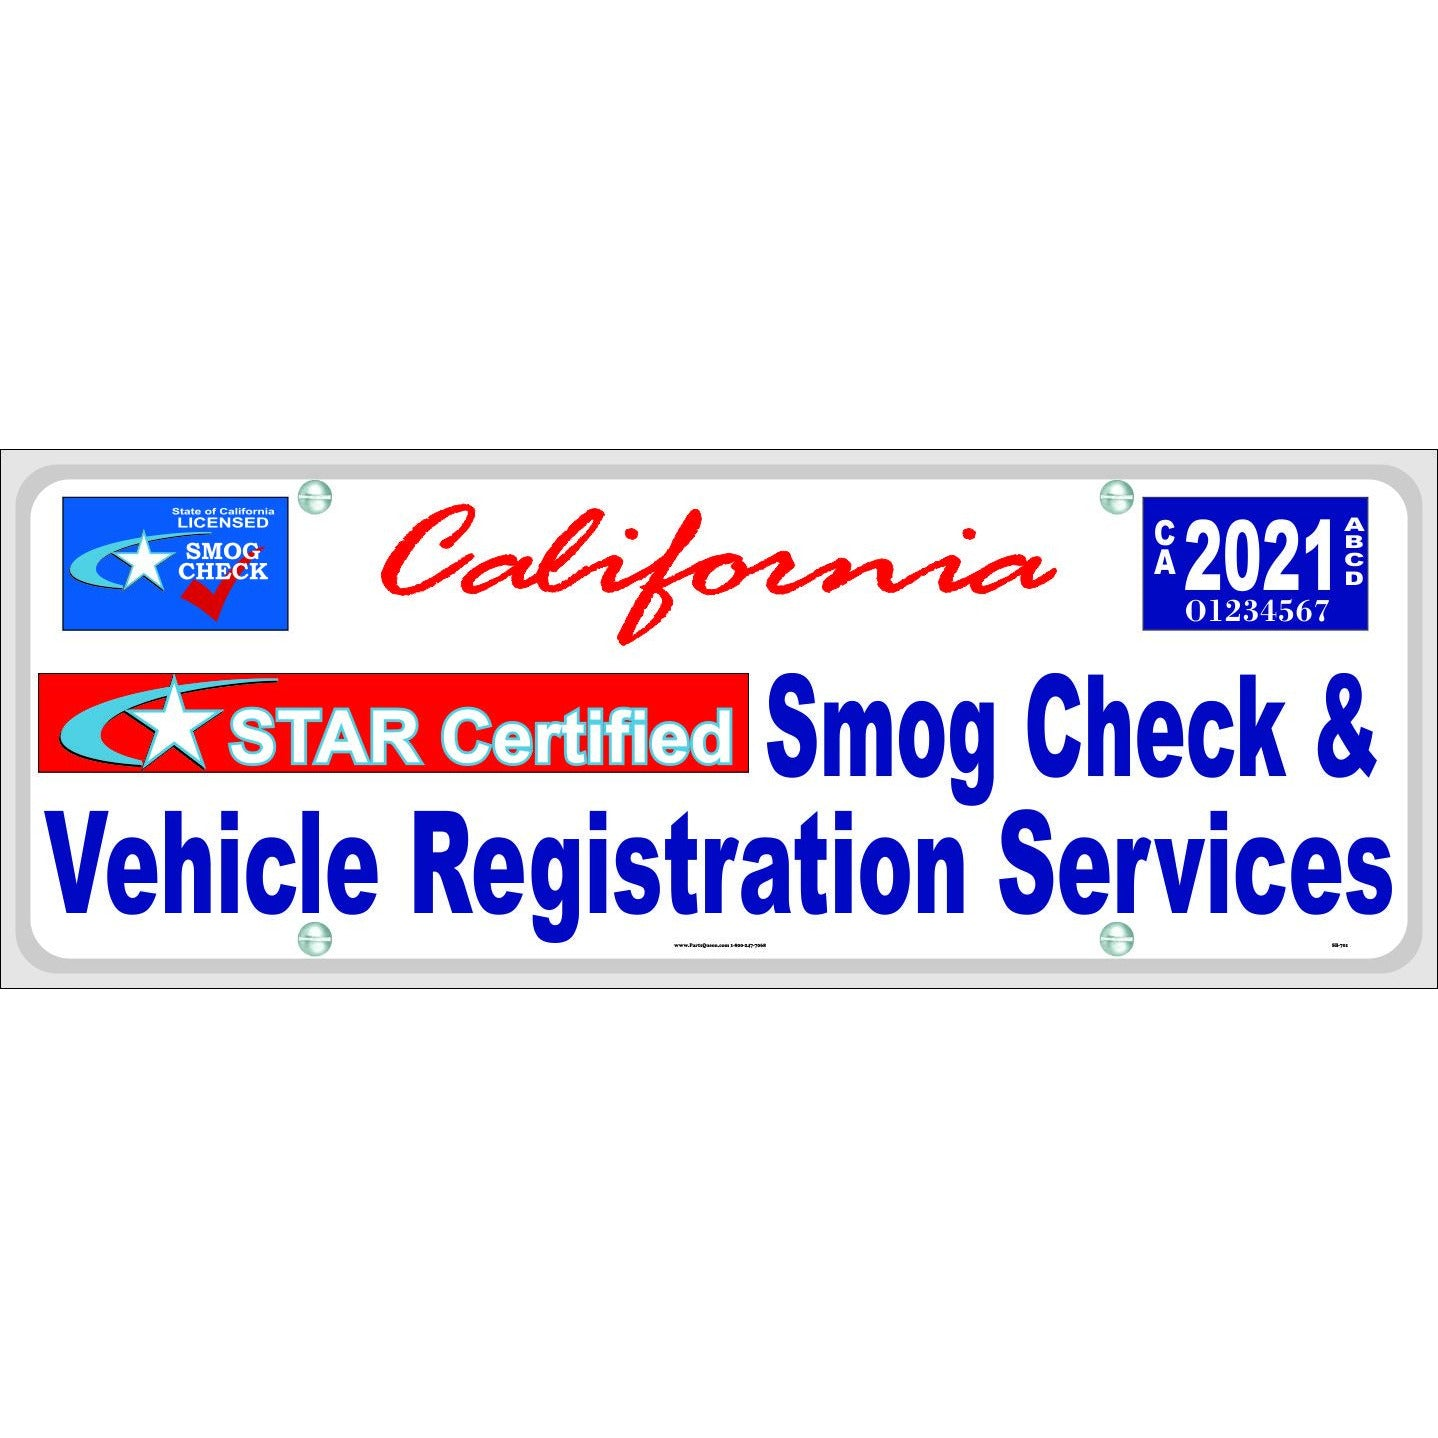 SB-701 SMOG CHECK & VEHICLE REGISTRATION BANNER, STAR CERTIFIED